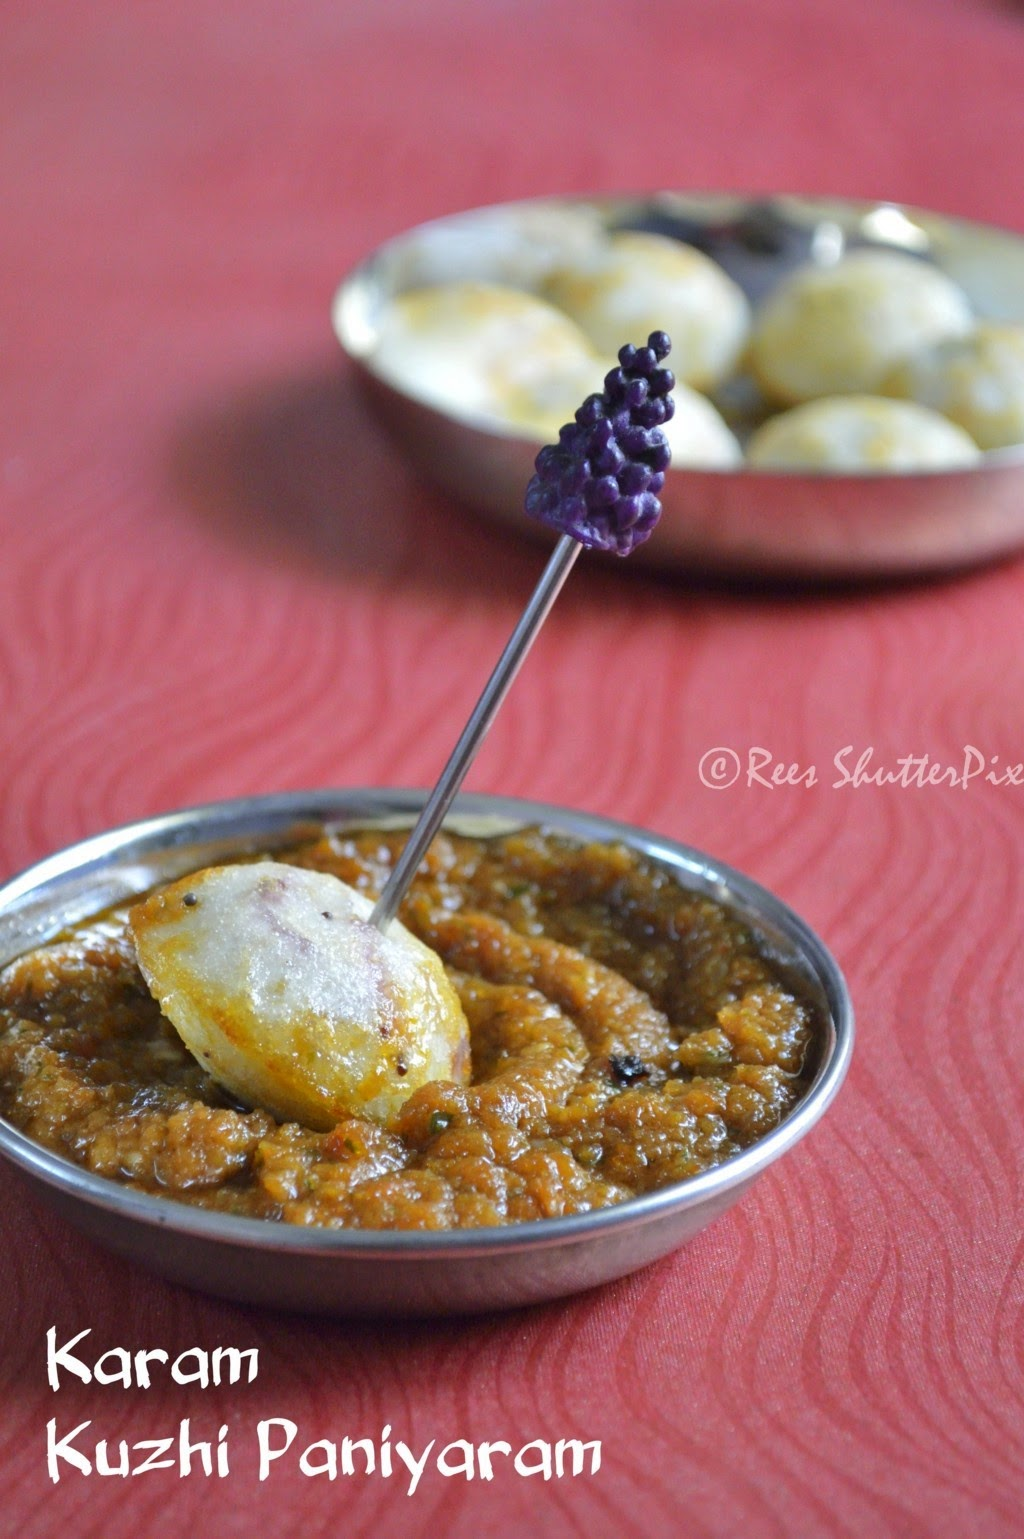 Chettinad Recieps, Paniyaram Recipe, Breakfast Recipes, sweet paniyaram, chettinad special paniyaram dish,easy kuzhi paniyaram recipe, kara paniyaram recipe, sweet paniyaram,spicy paniyaram, how to make kara paniyaram, how to make paniyaram at home